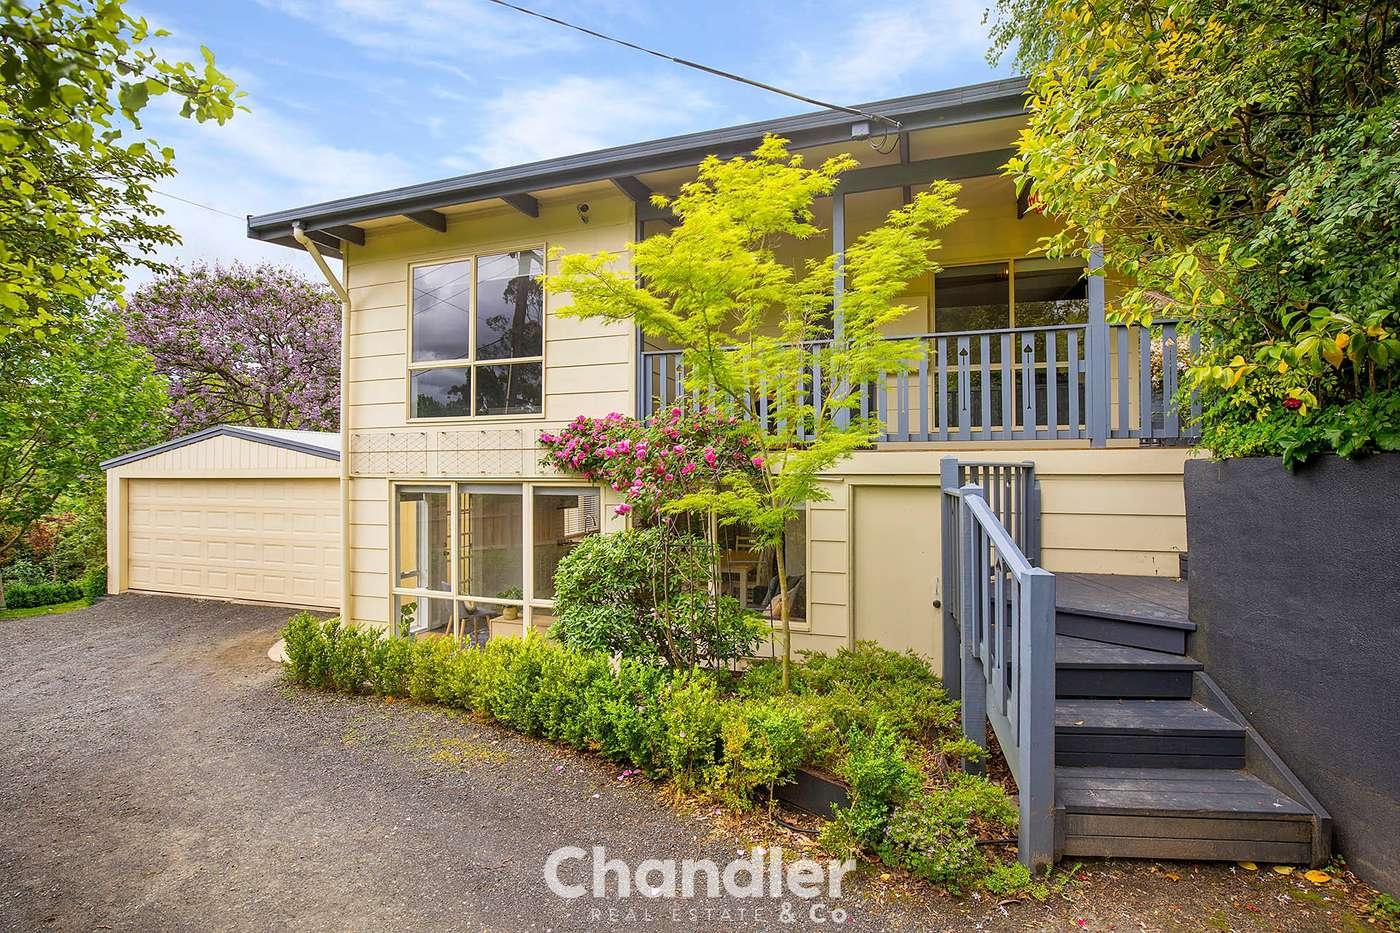 Main view of Homely house listing, 1 Hayes Place, Belgrave, VIC 3160